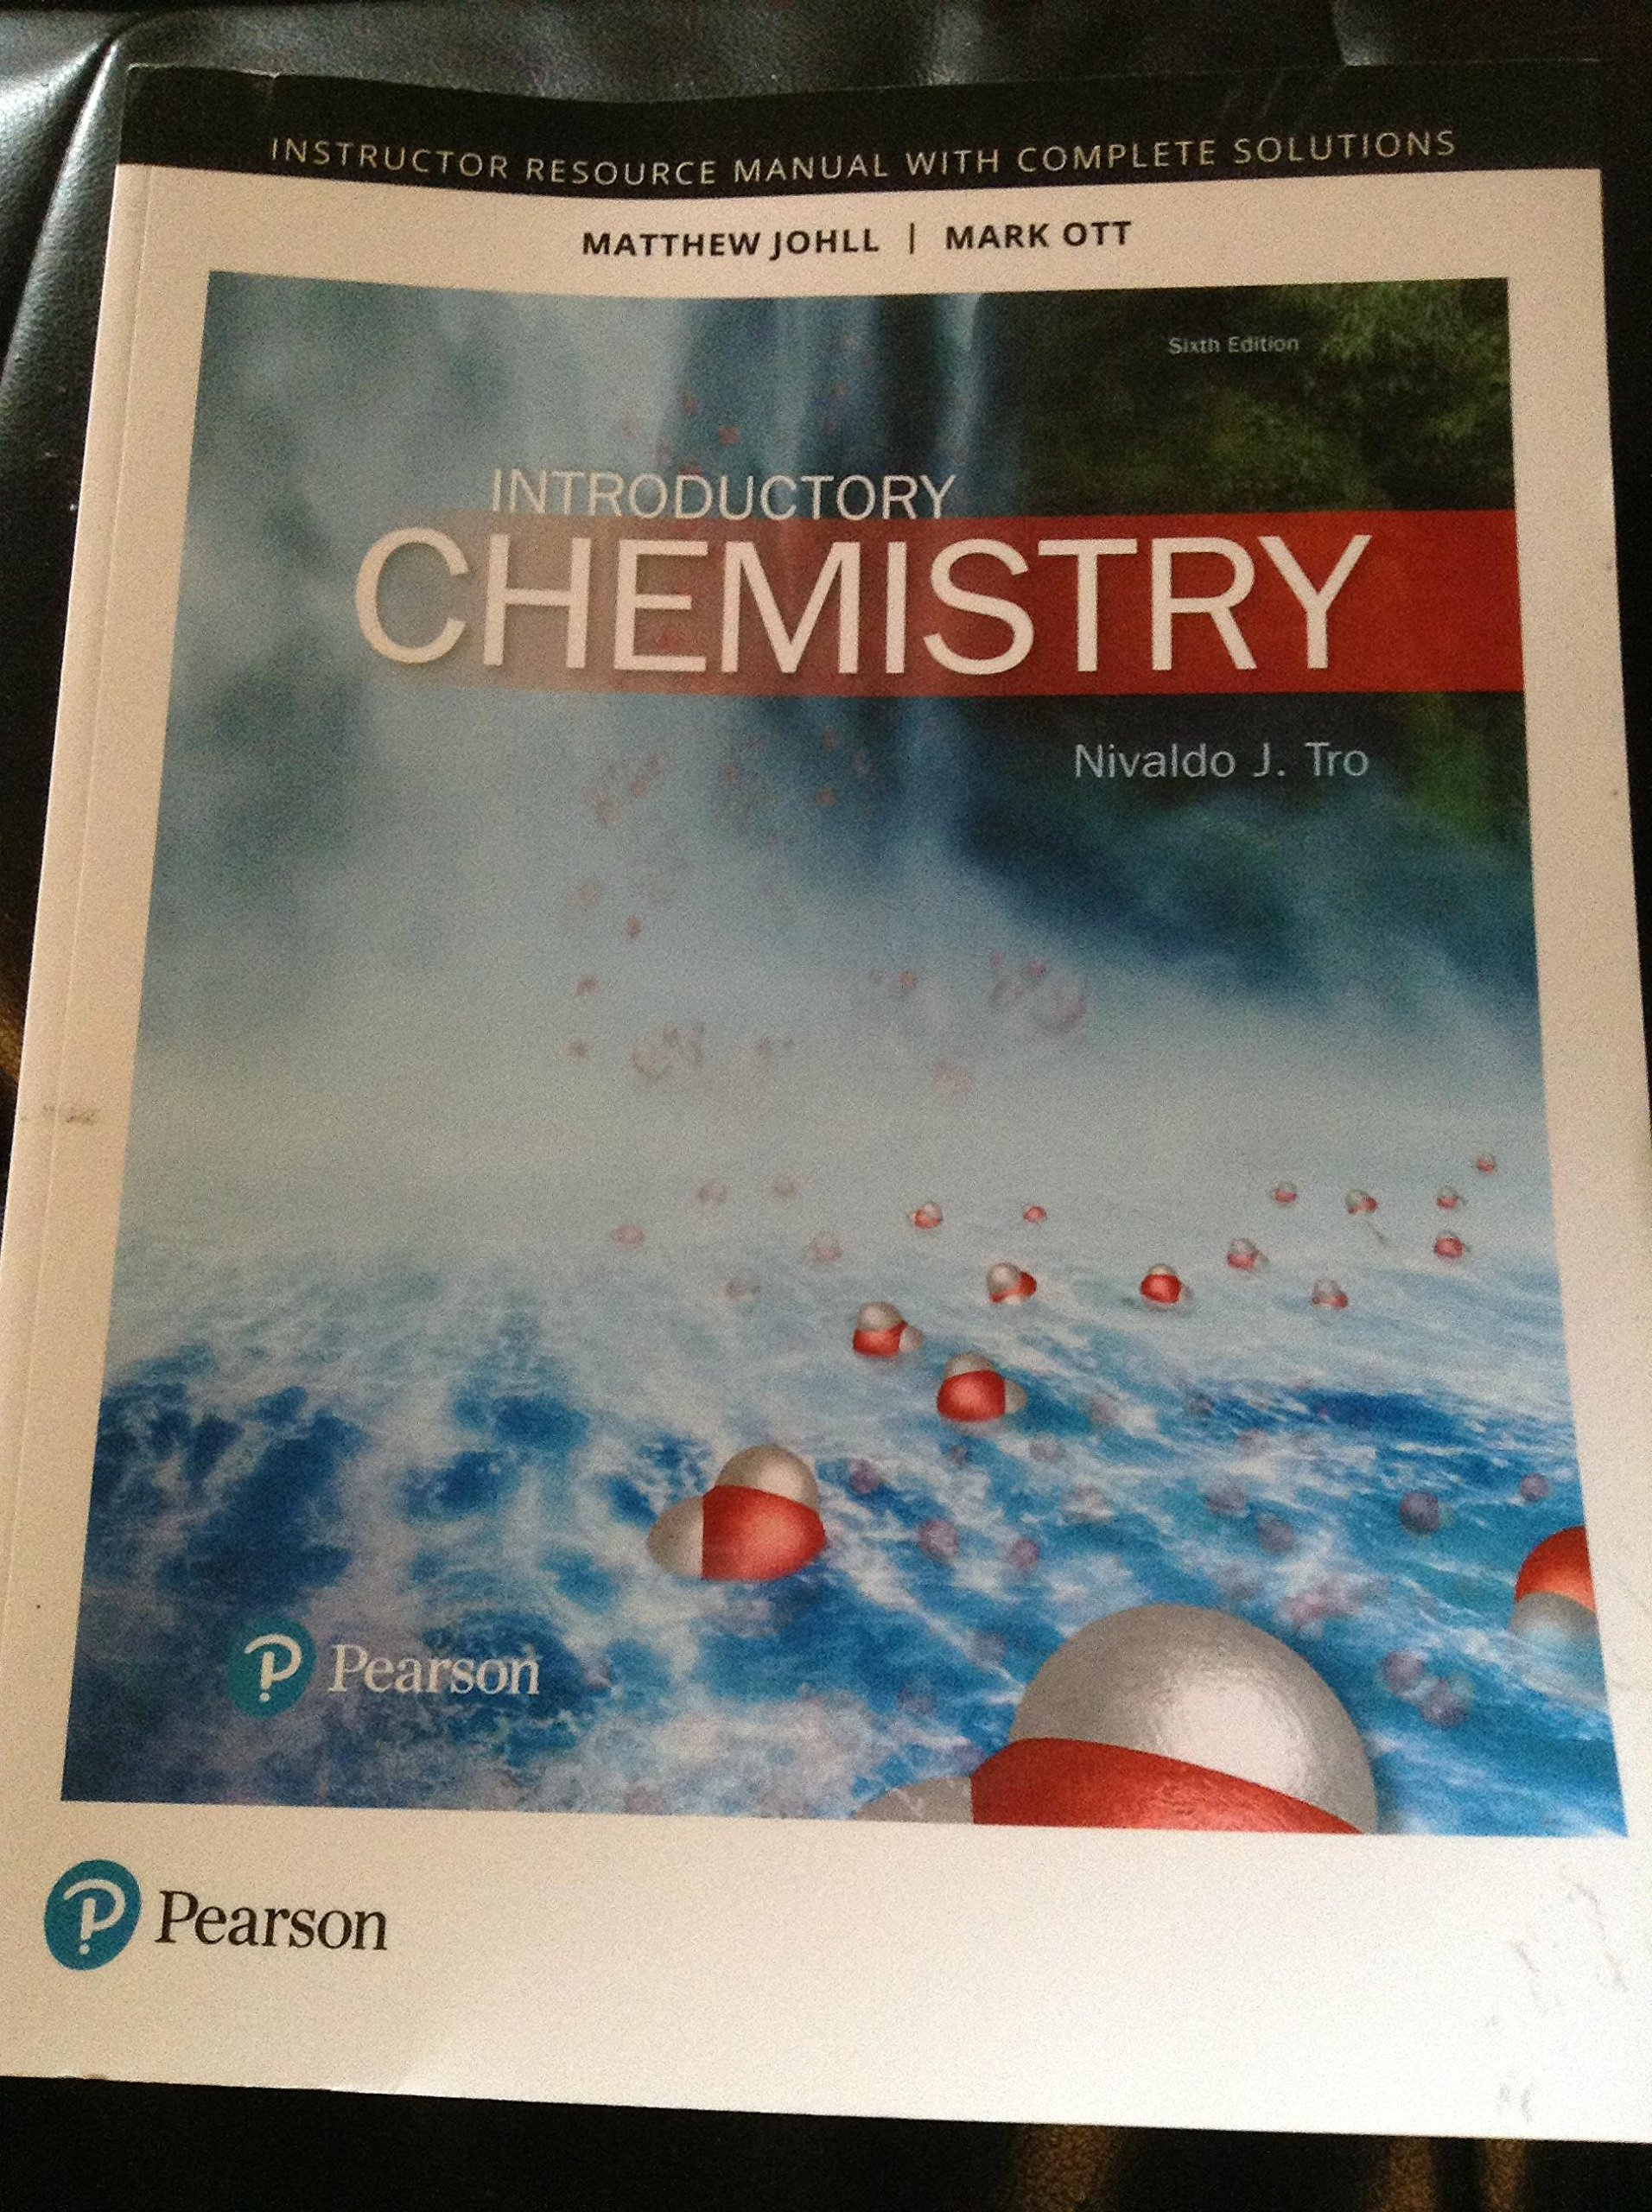 Introduction Chemistry (Instructor Resource Manual with Complete Solutions):  Nivaldo J. Tro: 9780134564050: Amazon.com: Books